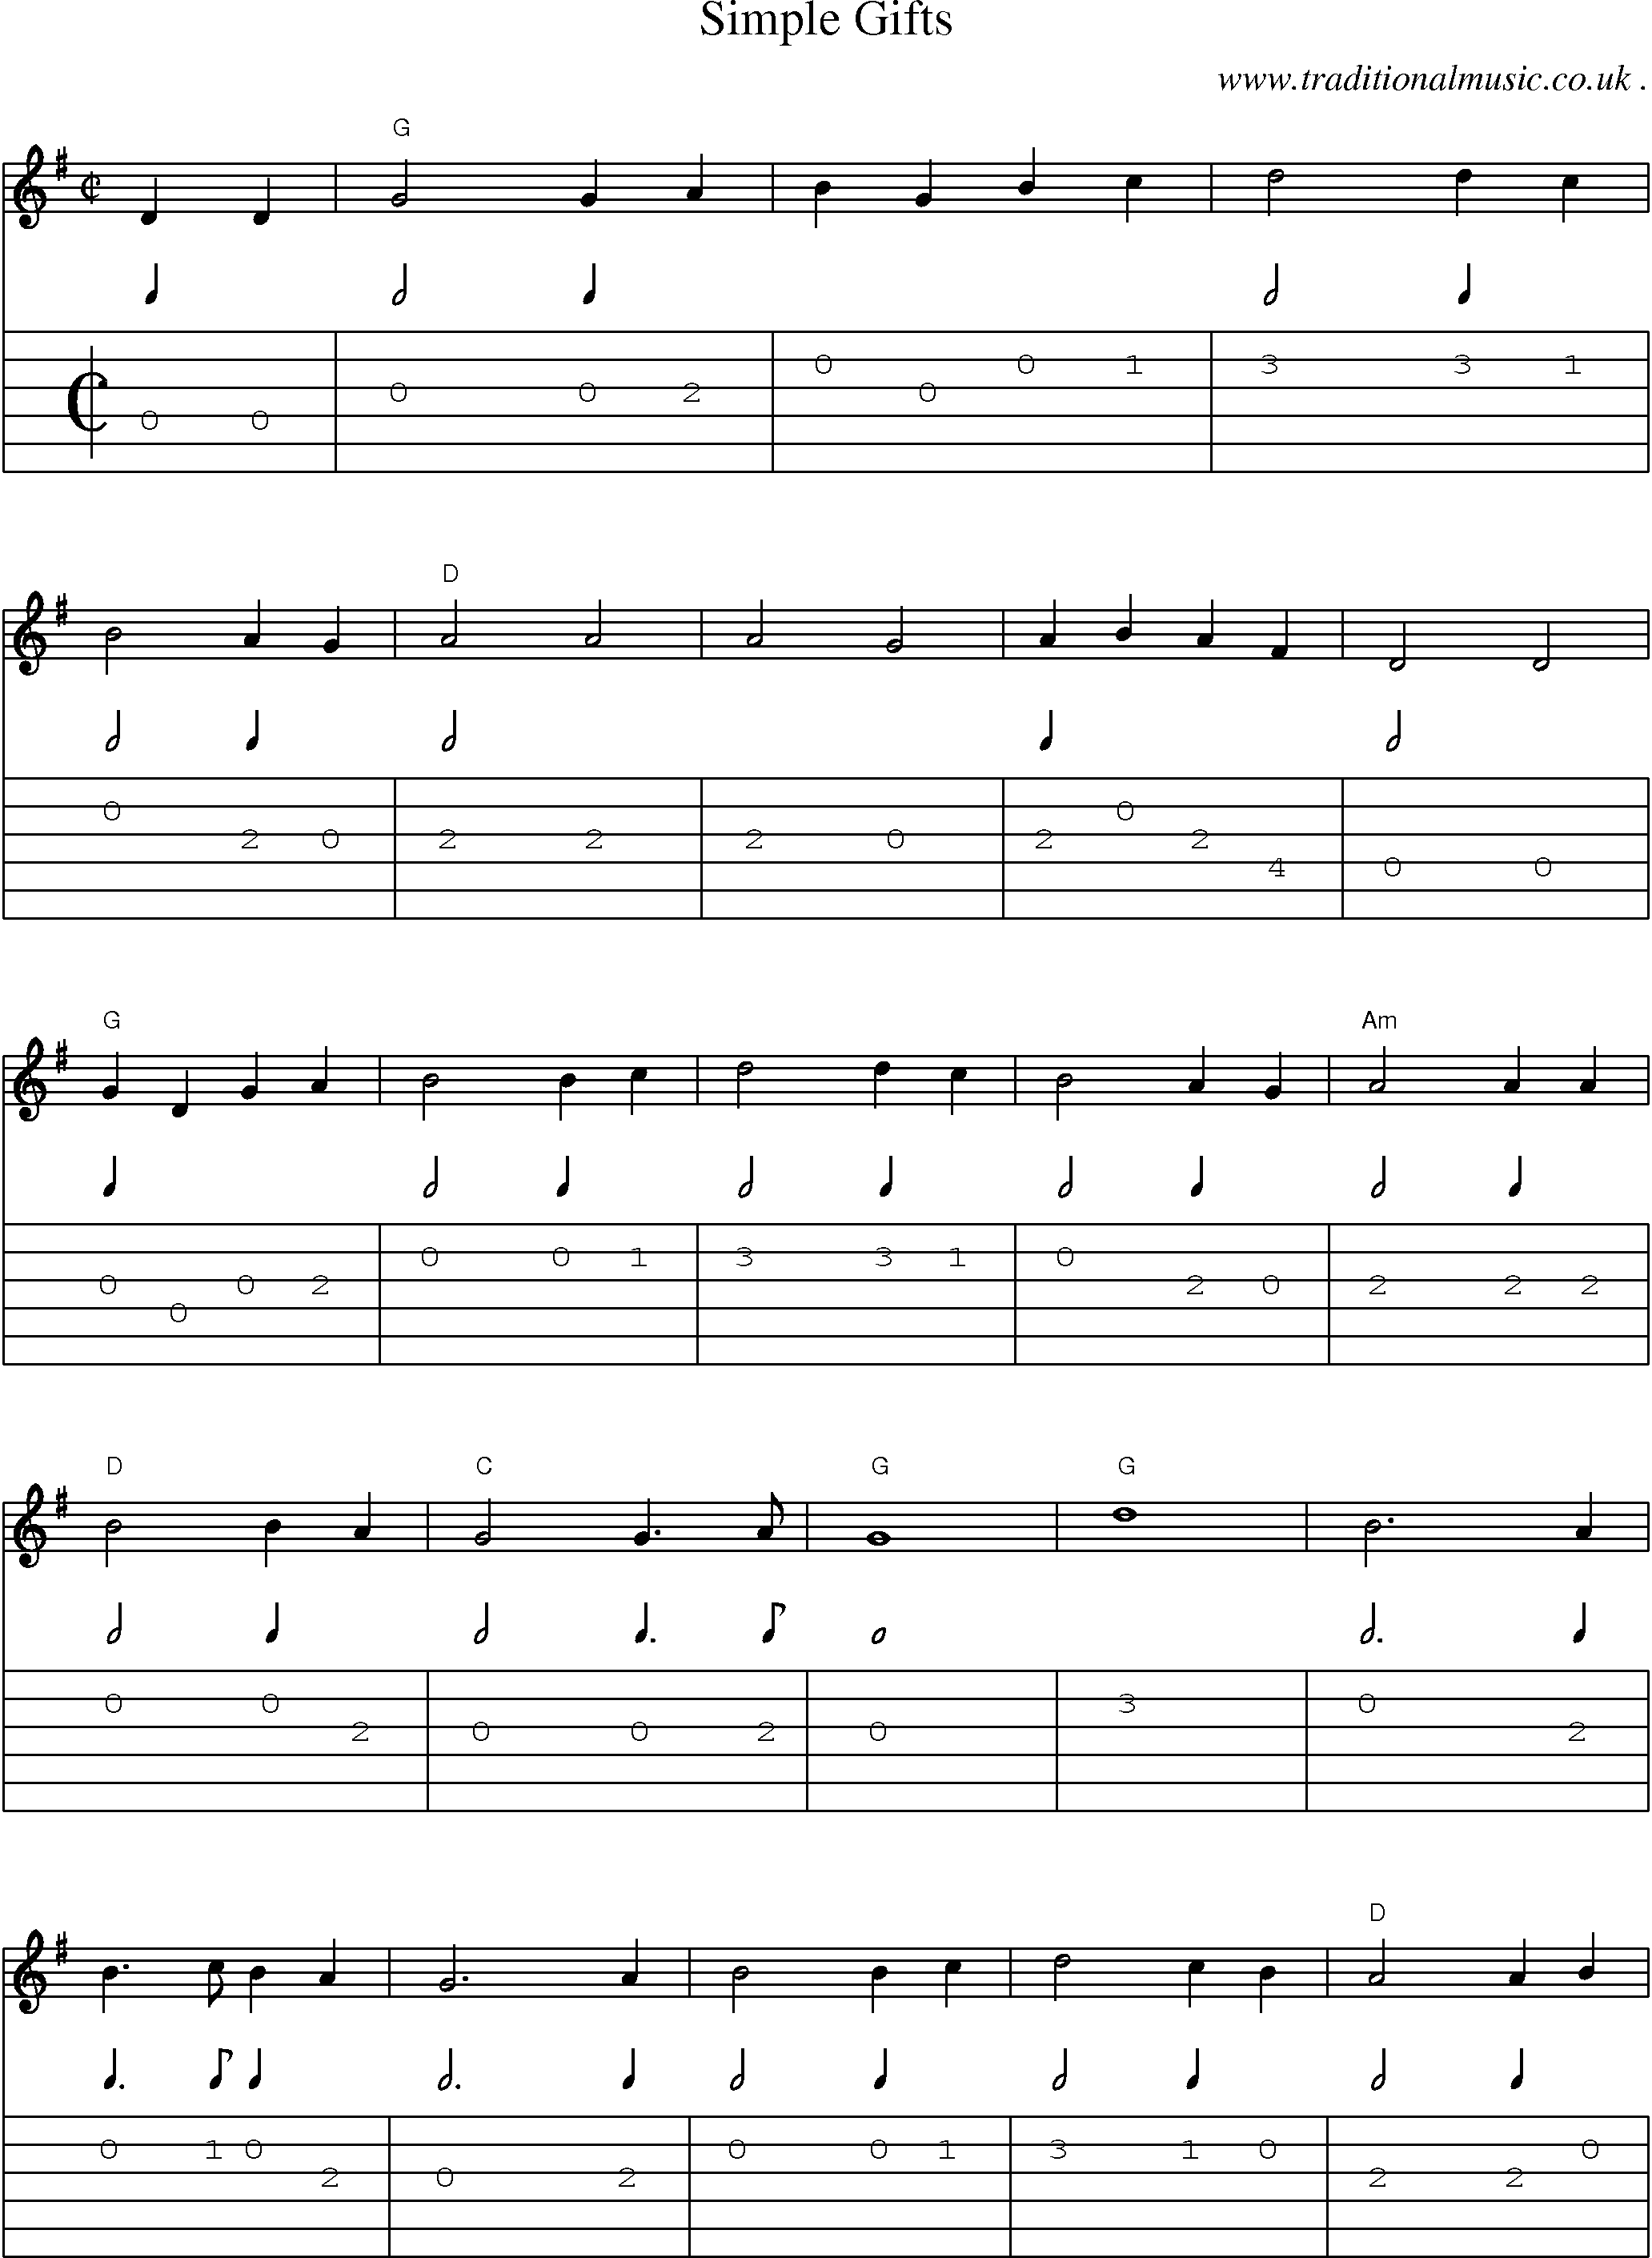 Common session tunes, Scores and Tabs for Guitar - Simple Gifts